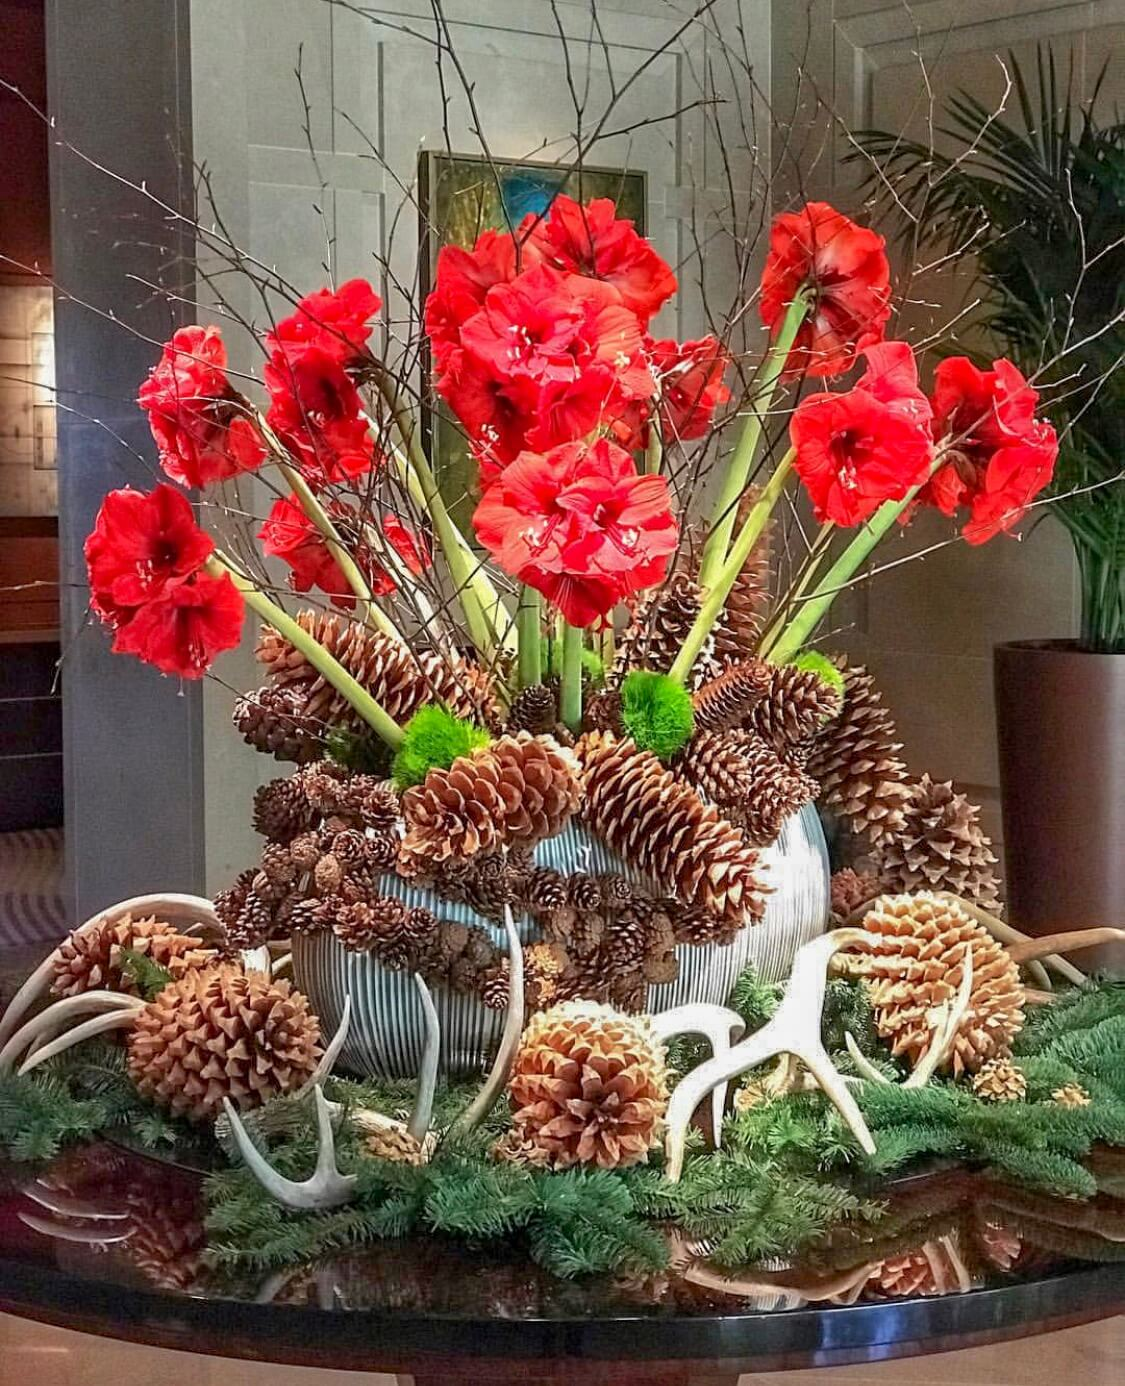 Pinecone and amaryllis display at The Umstead Hotel and Spa